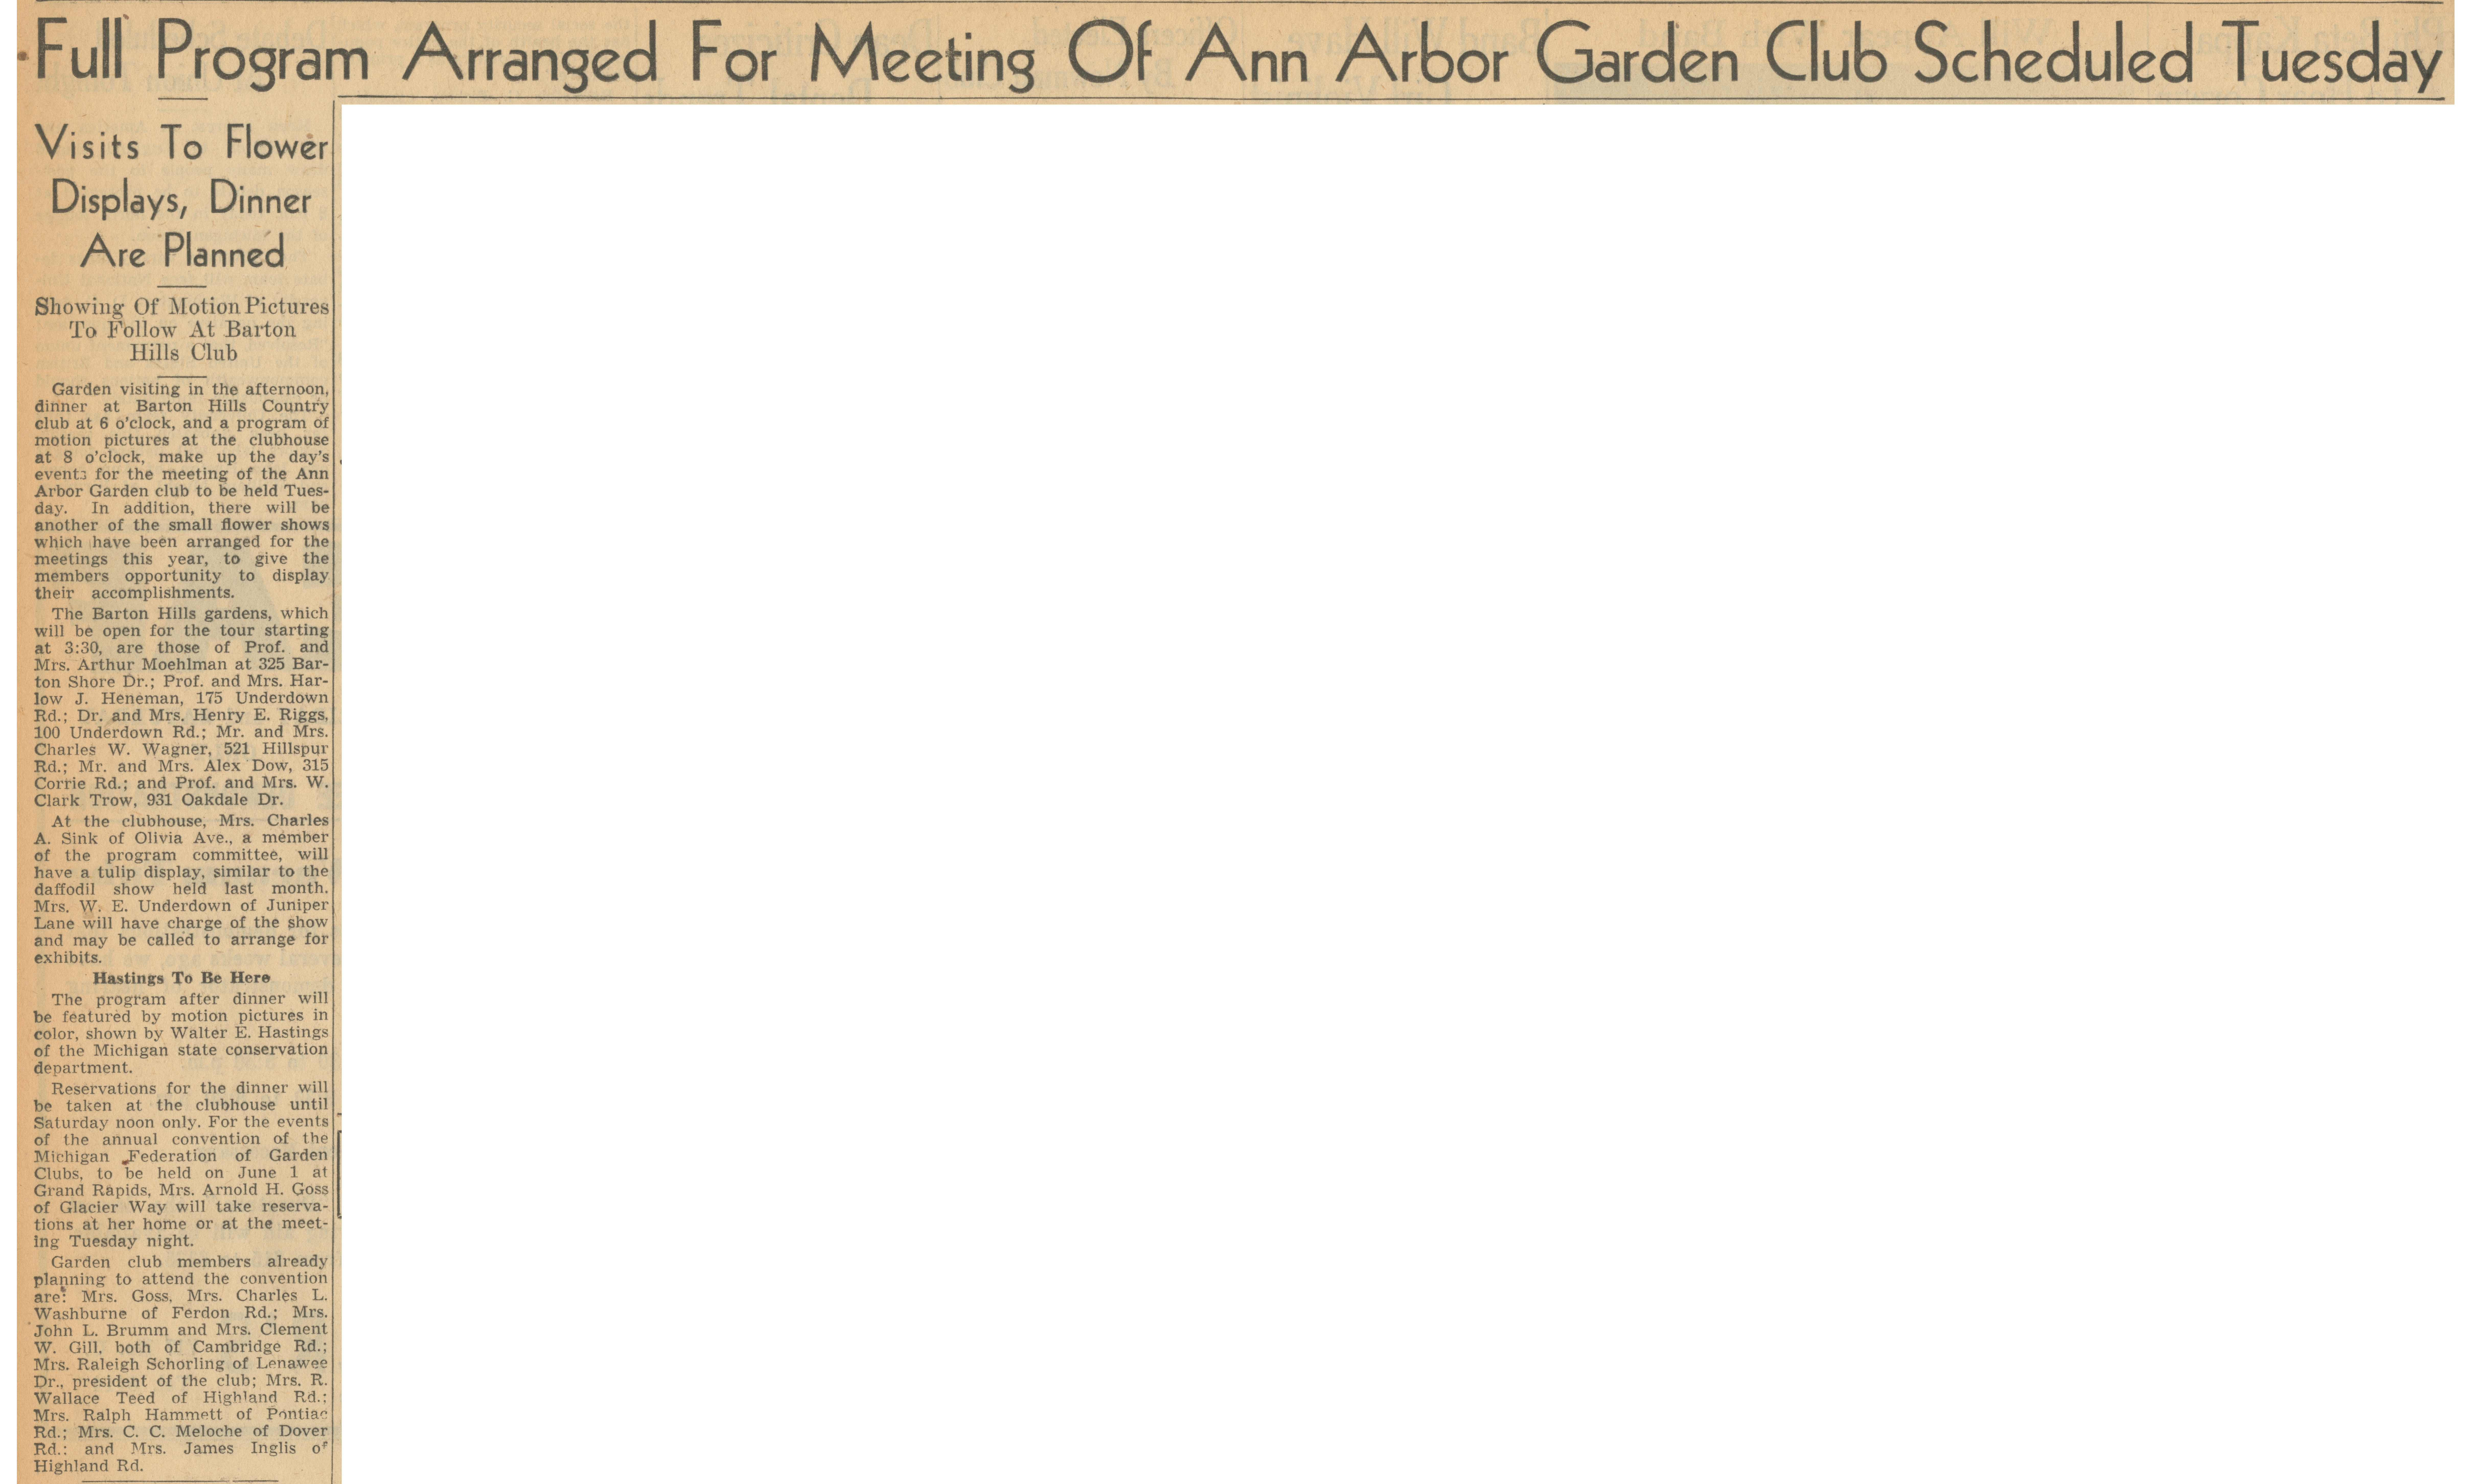 Full Program Arranged For Meeting Of Ann Arbor Garden Club Scheduled Tuesday image